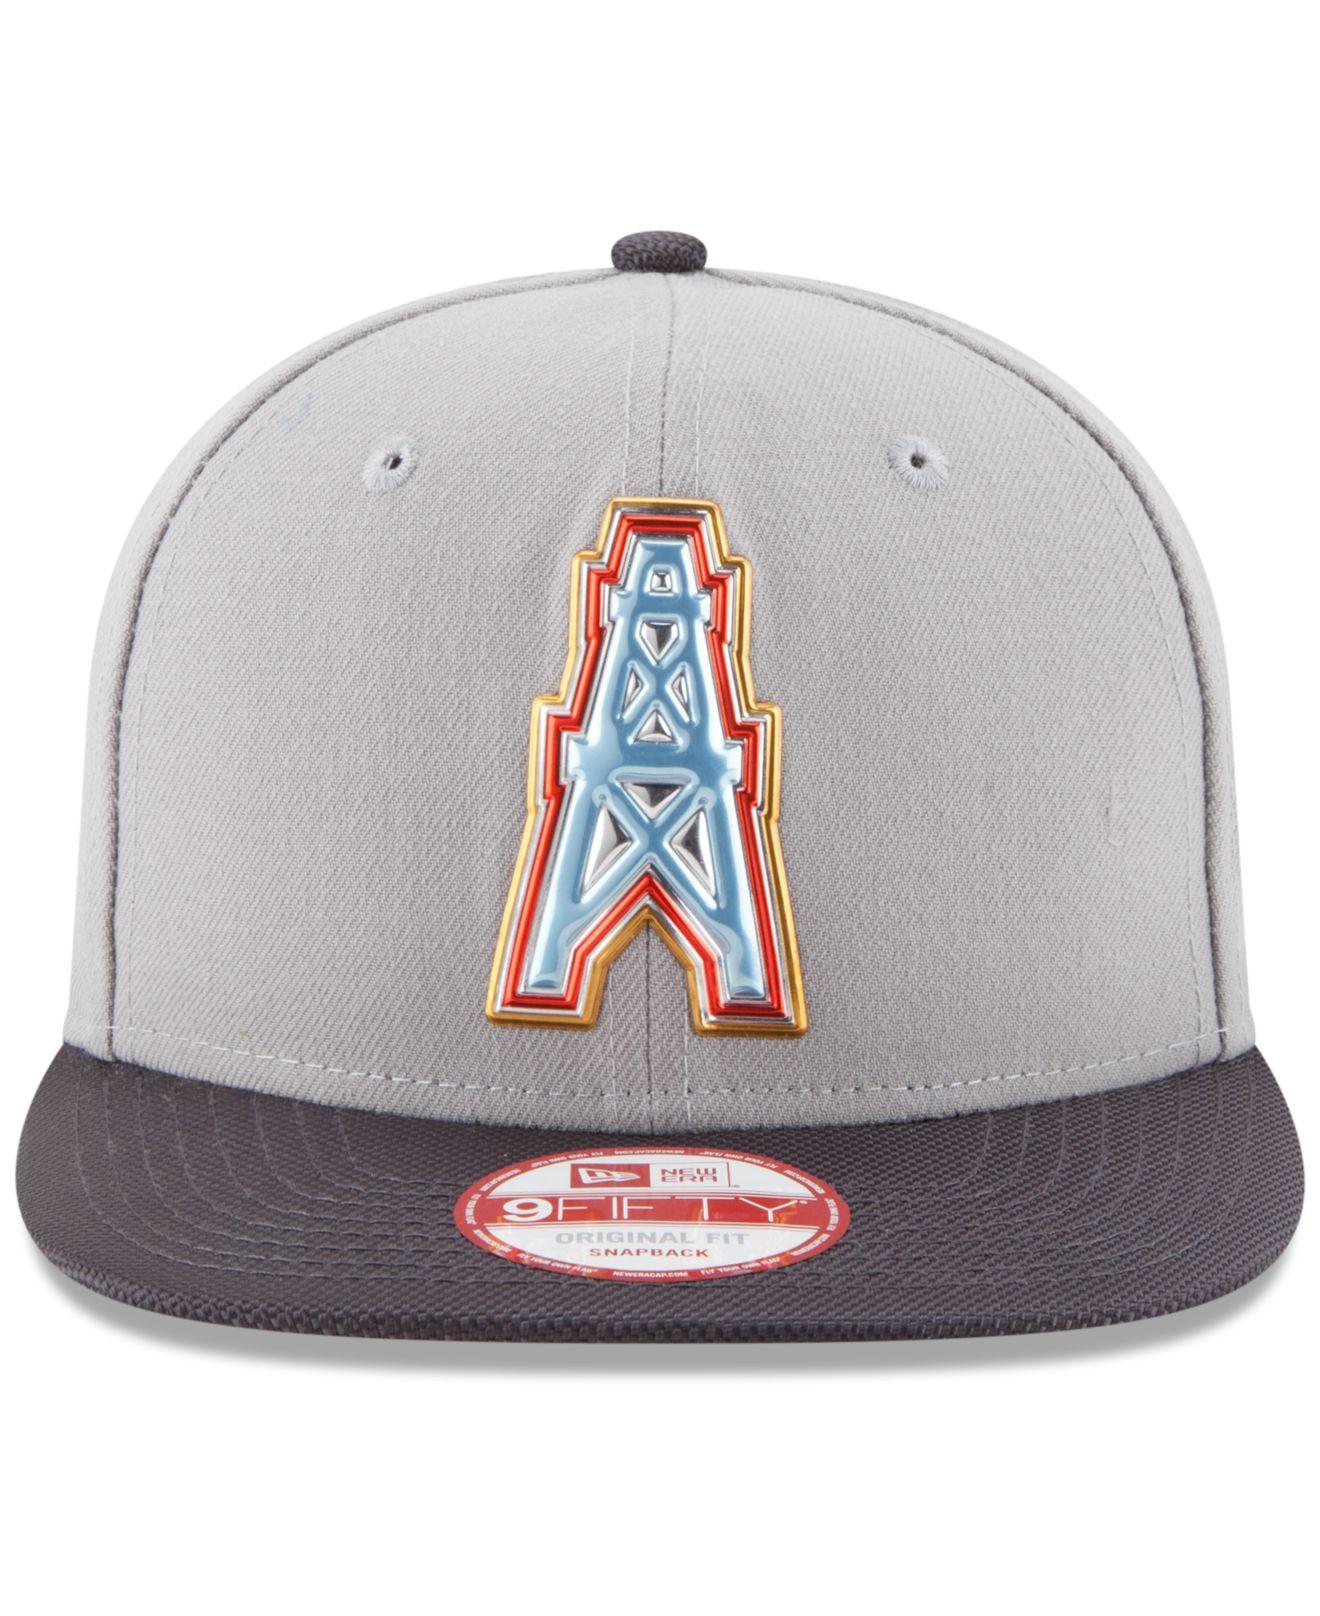 Lyst - KTZ Houston Oilers Gold Collection 9fifty Snapback Cap in Gray for  Men a235dfd3a